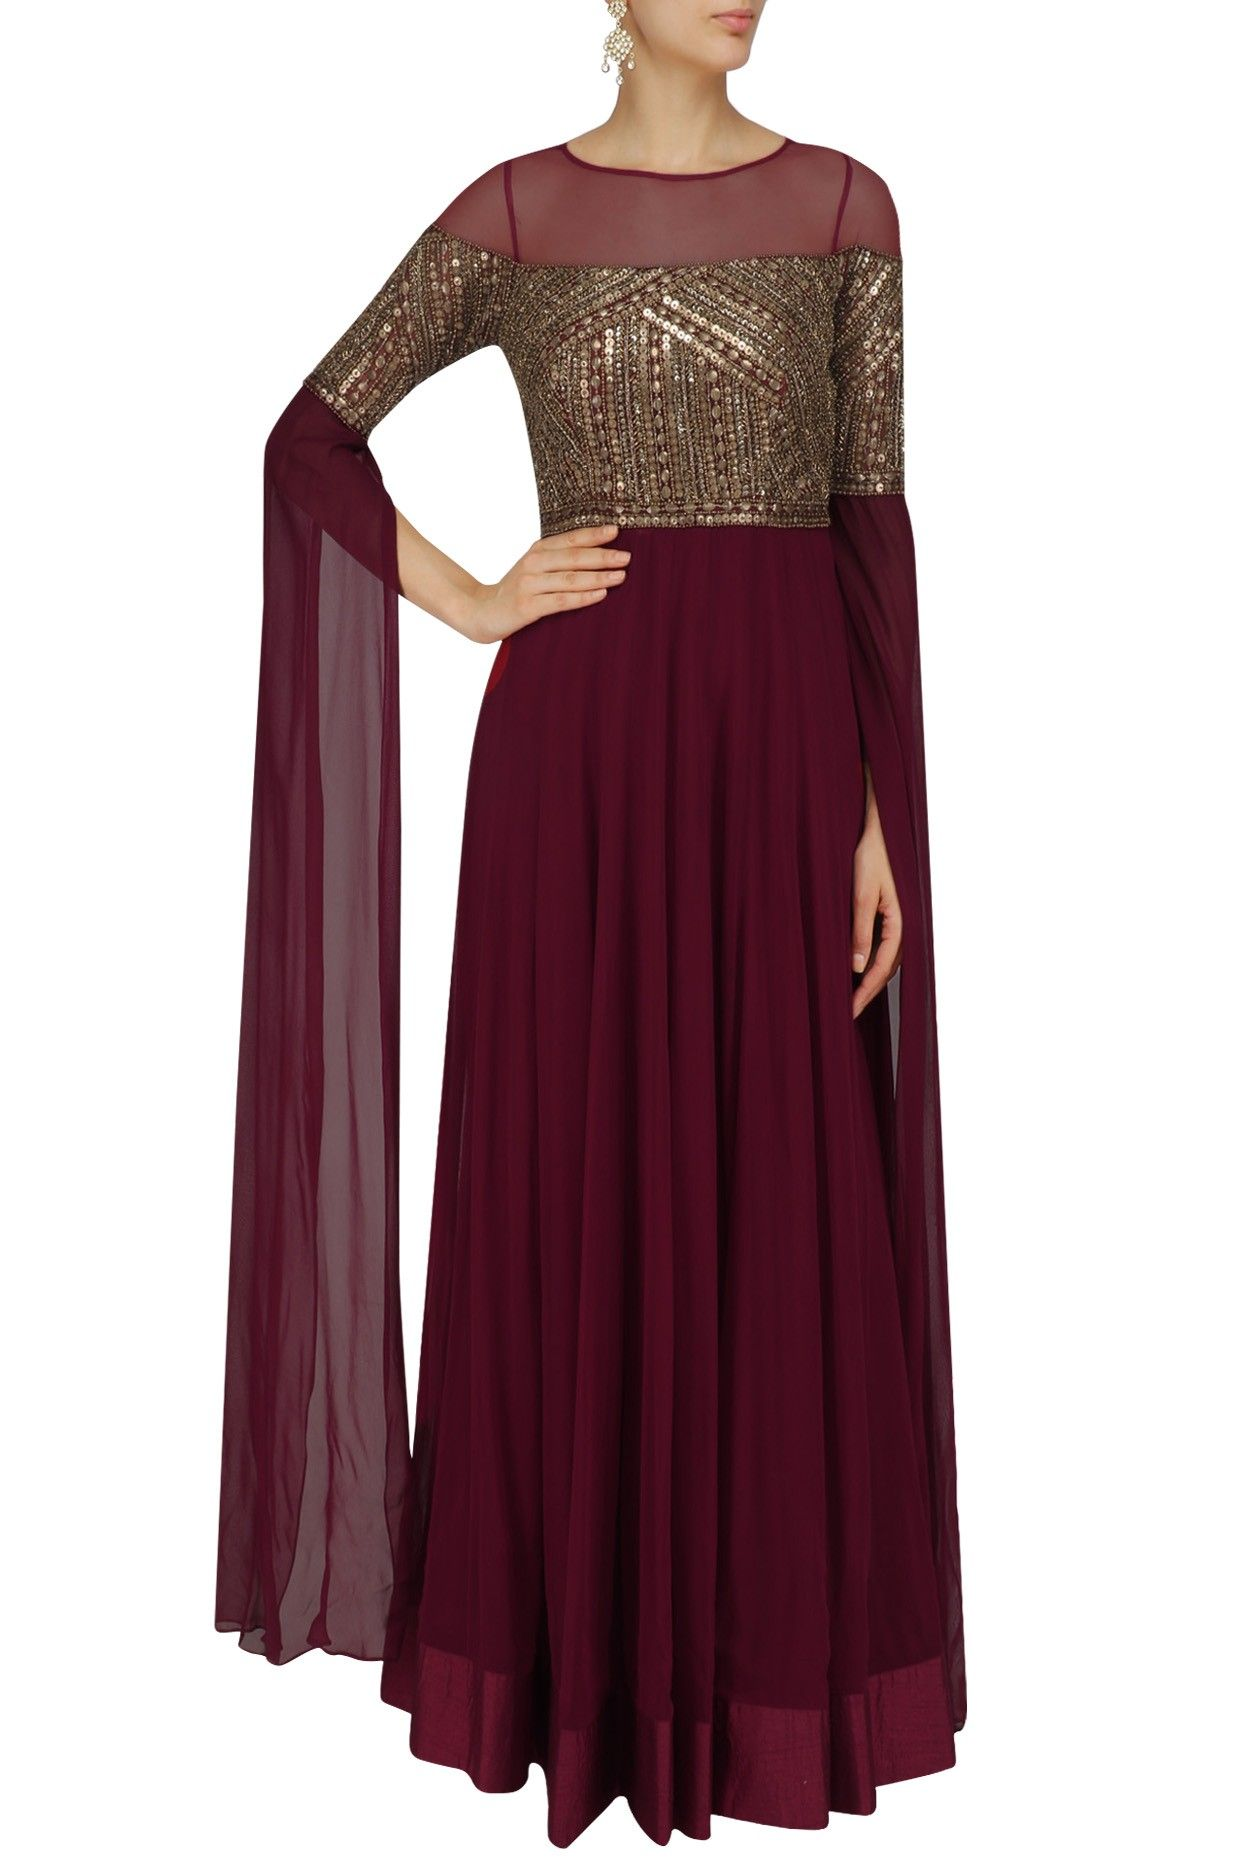 Deep Maroon Sequins Embellished Cape Sleeves Gown By Sanya Gulati #ethnic #traditional #pernia #perniaspopupshop #ethnicwear #indianwear #shopnow #sanyagulati